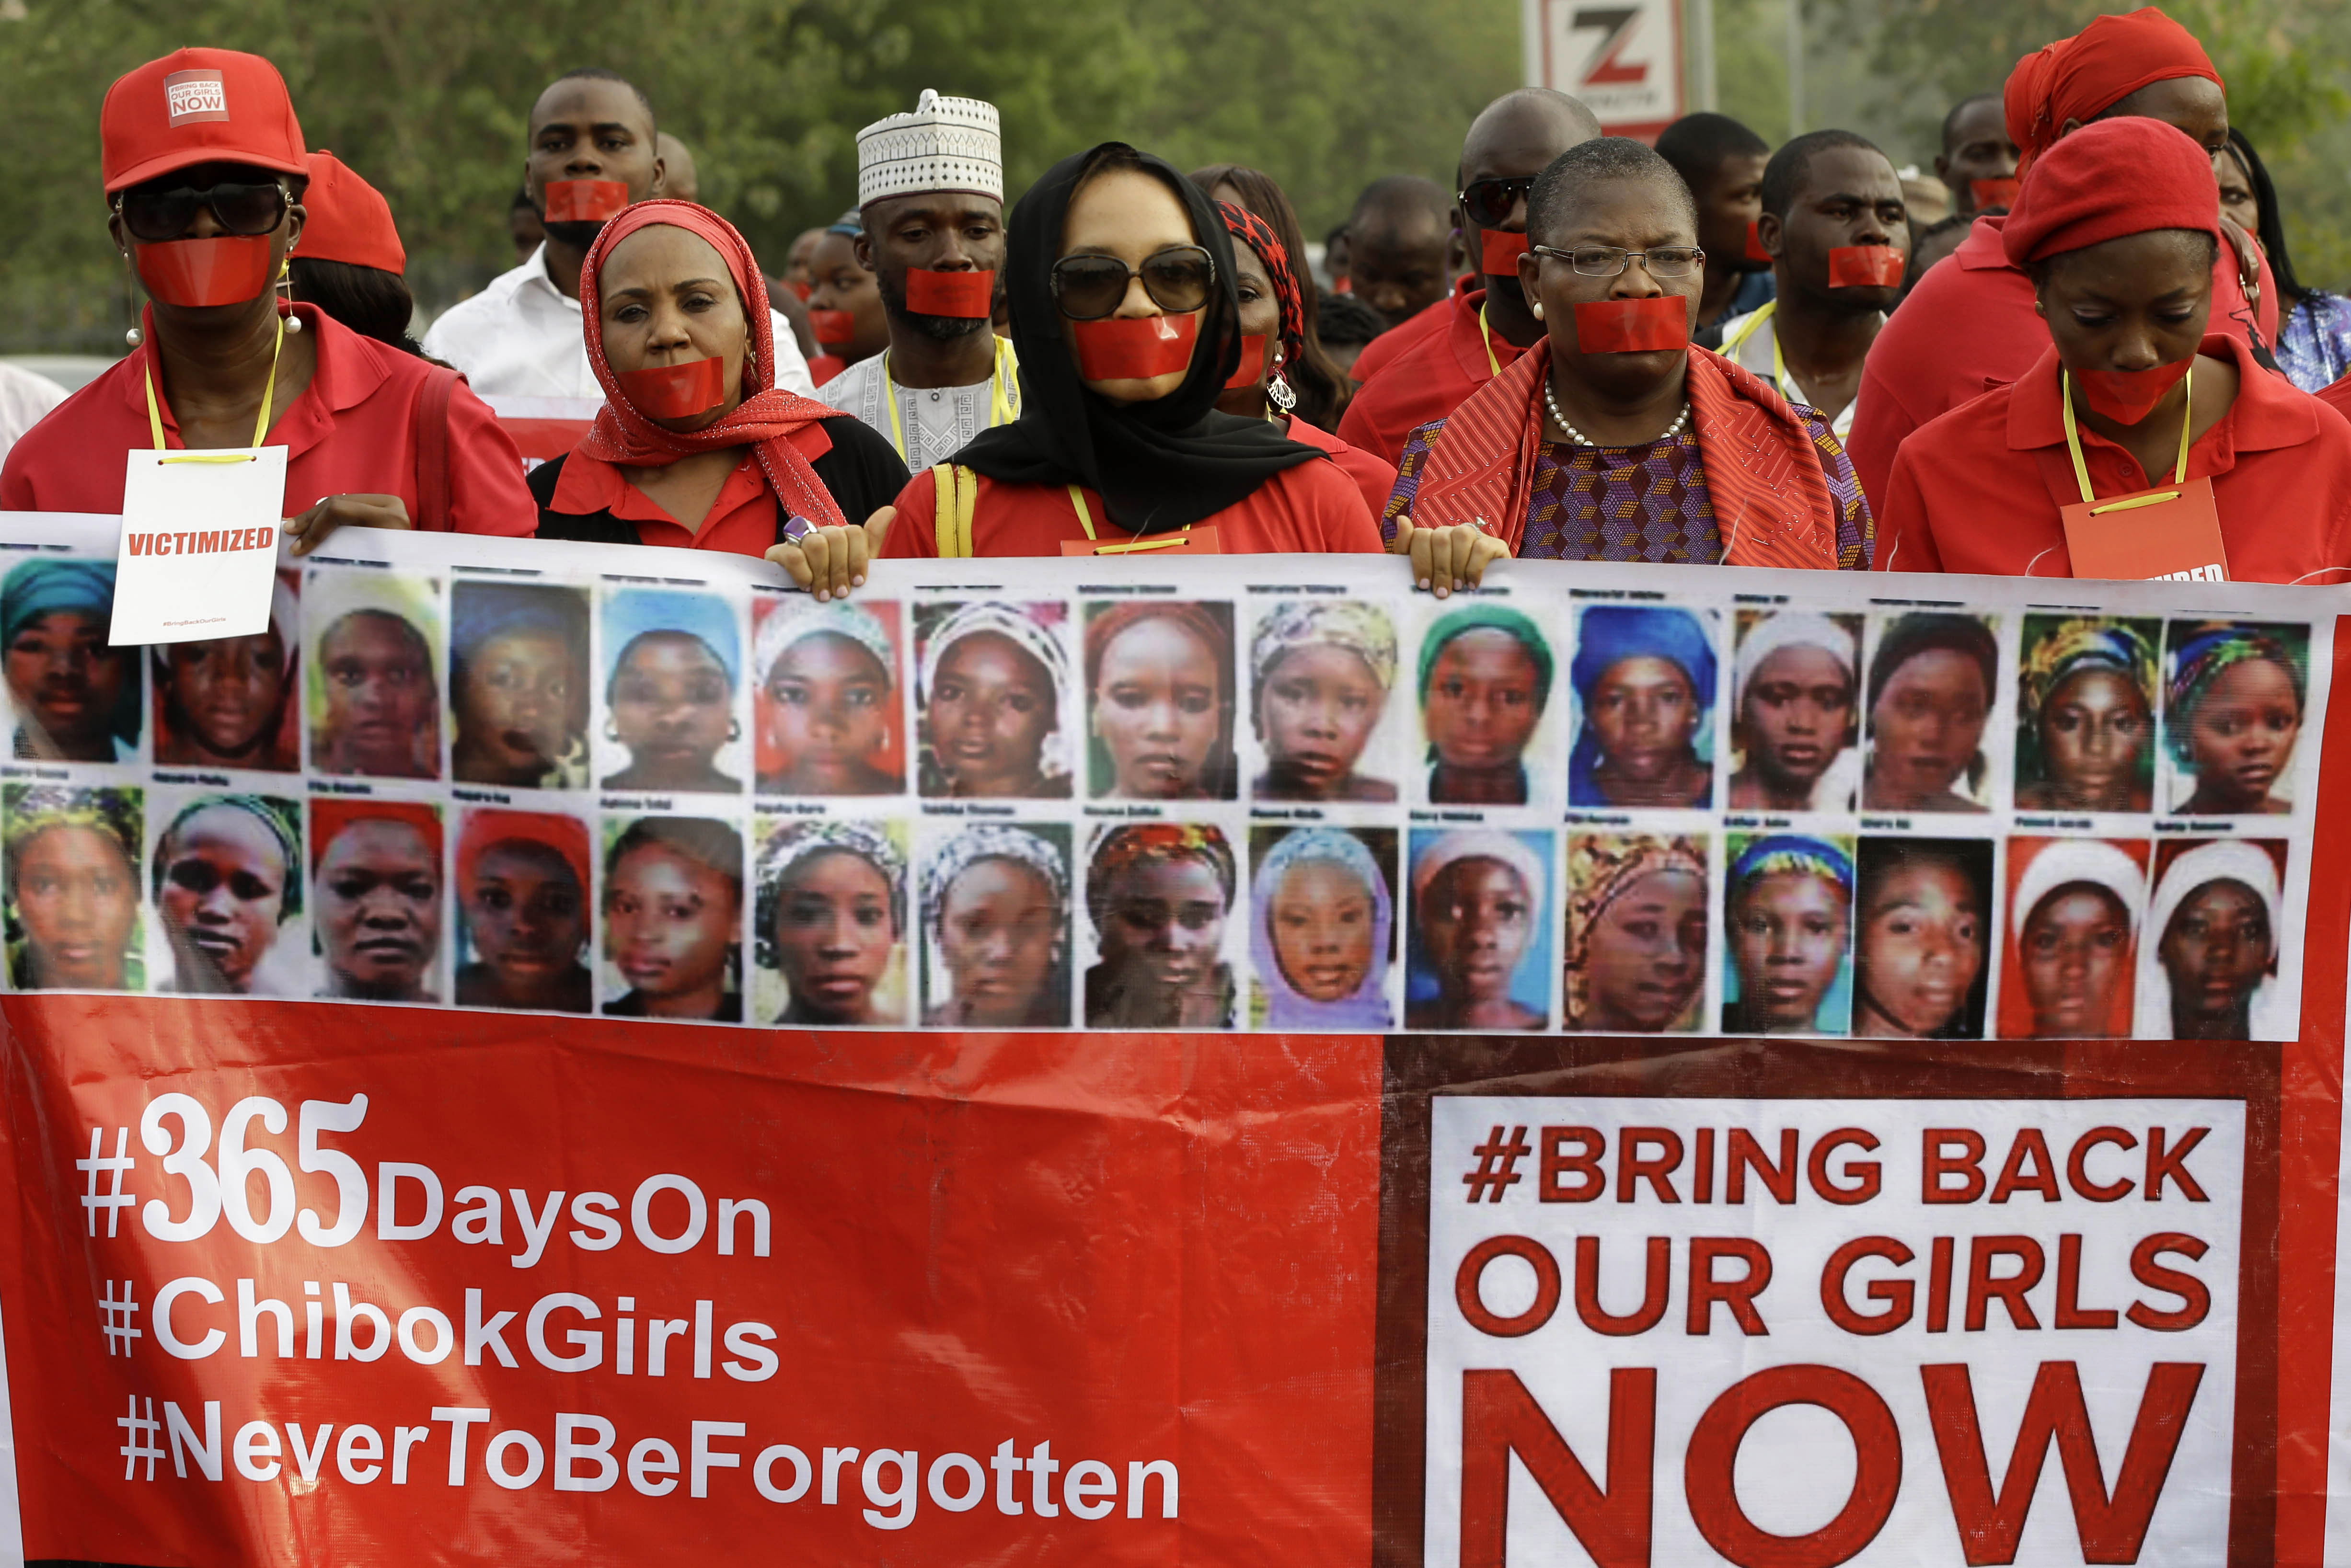 People march on a street of Abuja, Nigeria, during a silent protest on April 13, 2015, calling on the government to rescue the Chibok schoolgirls who were kidnapped a year ago